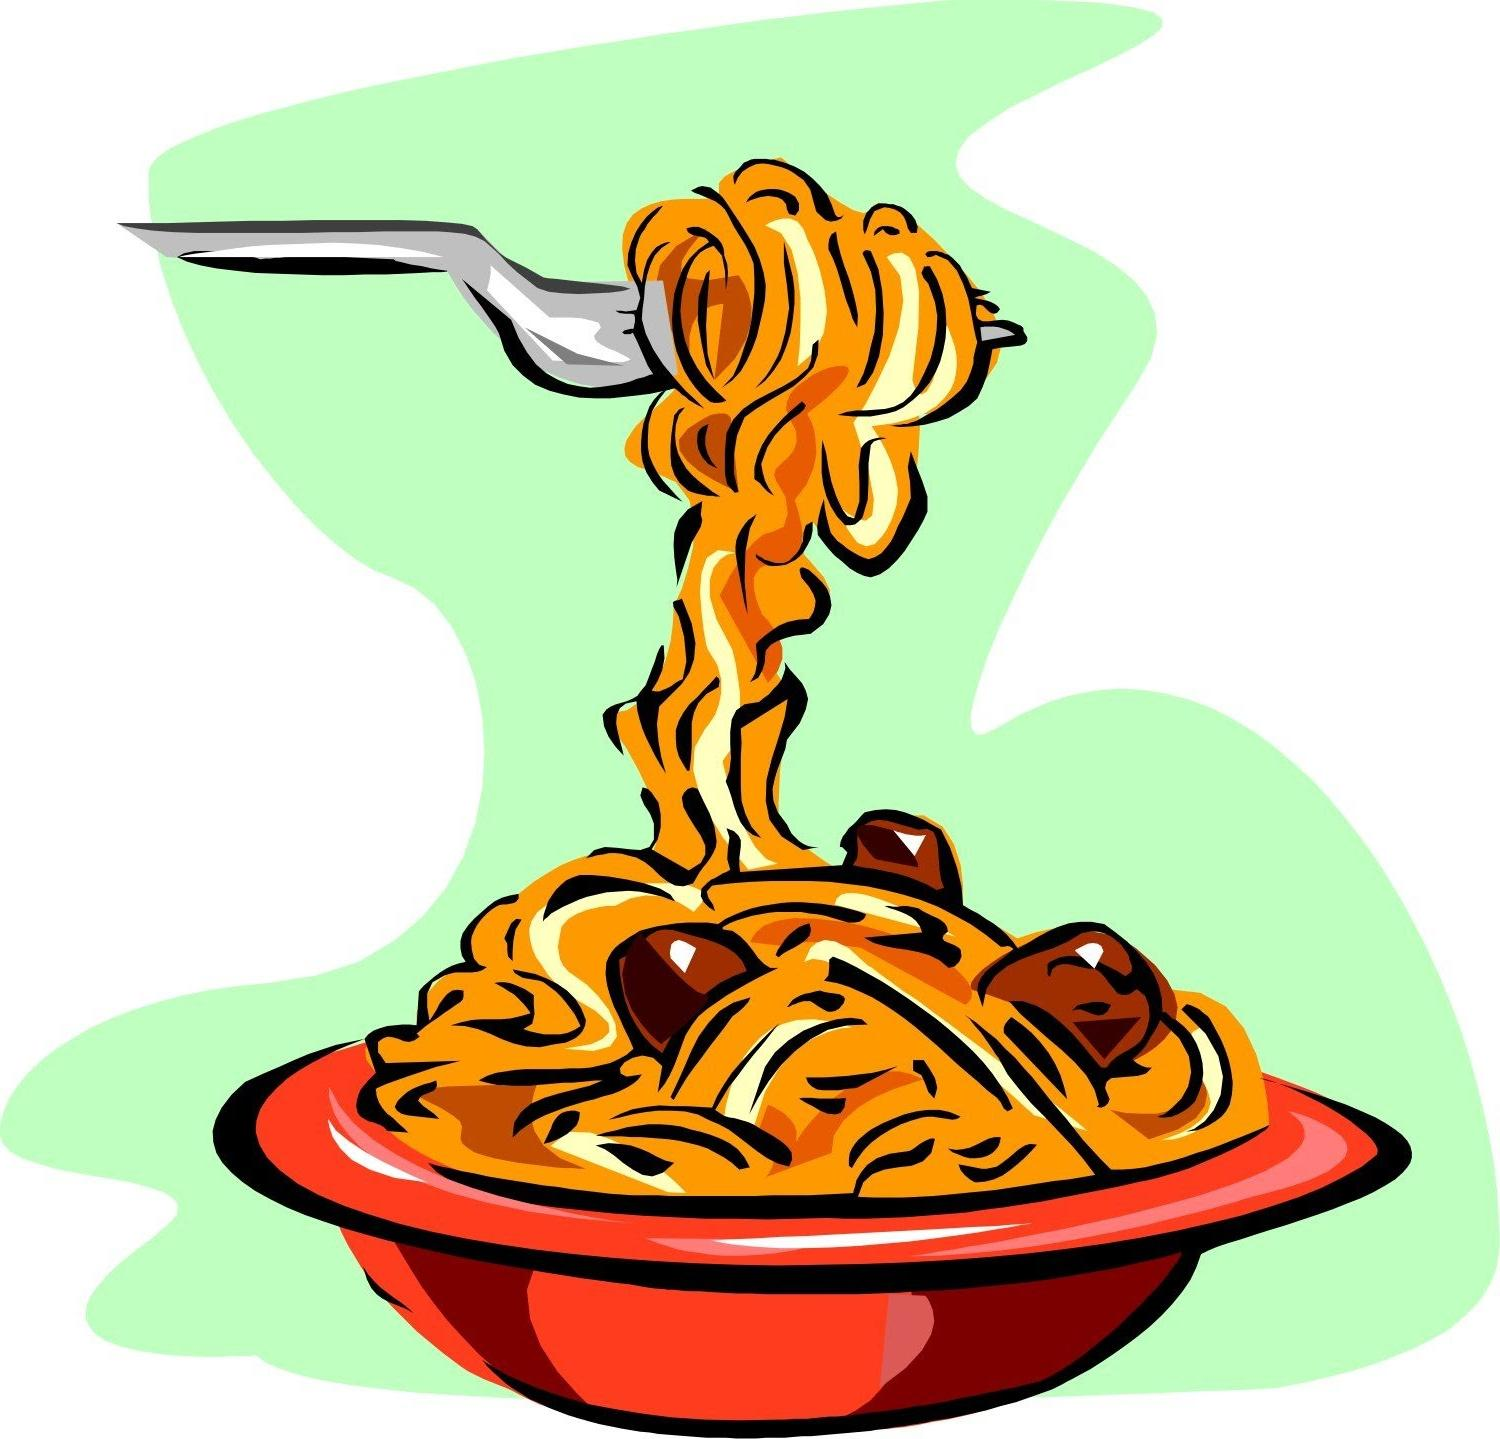 png royalty free download Bowl of free download. Pasta clipart.